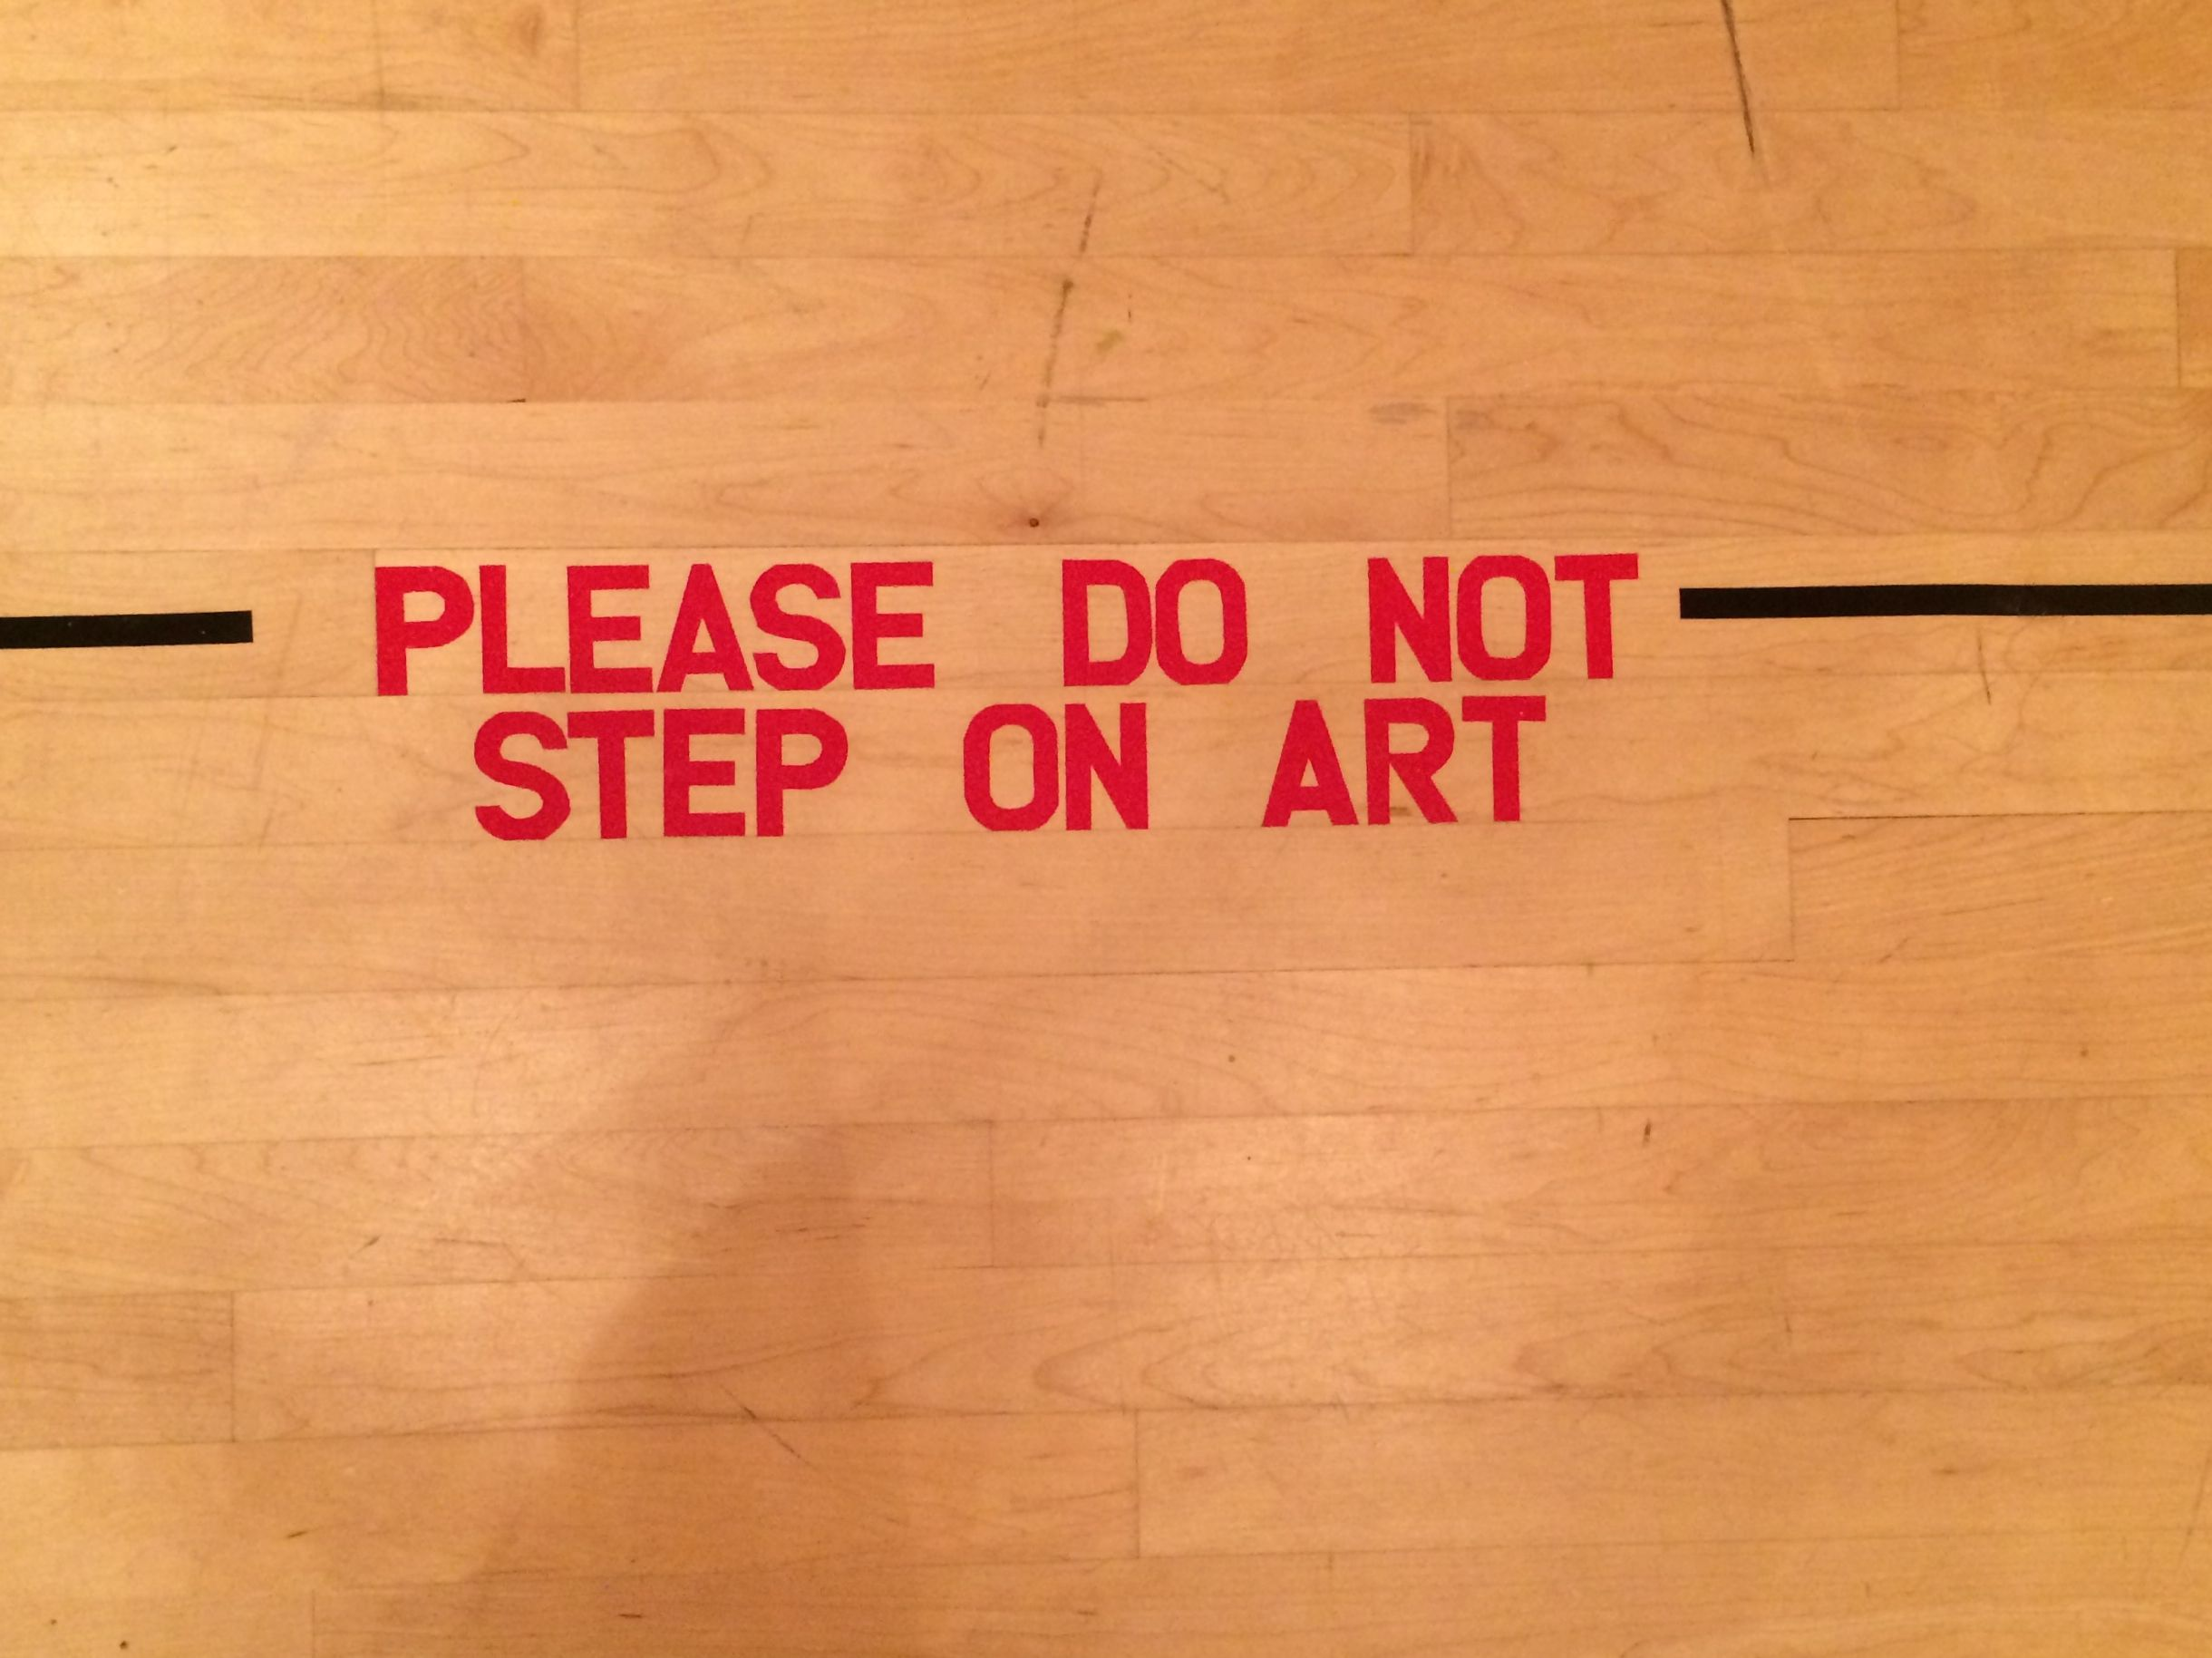 Please do not step on art